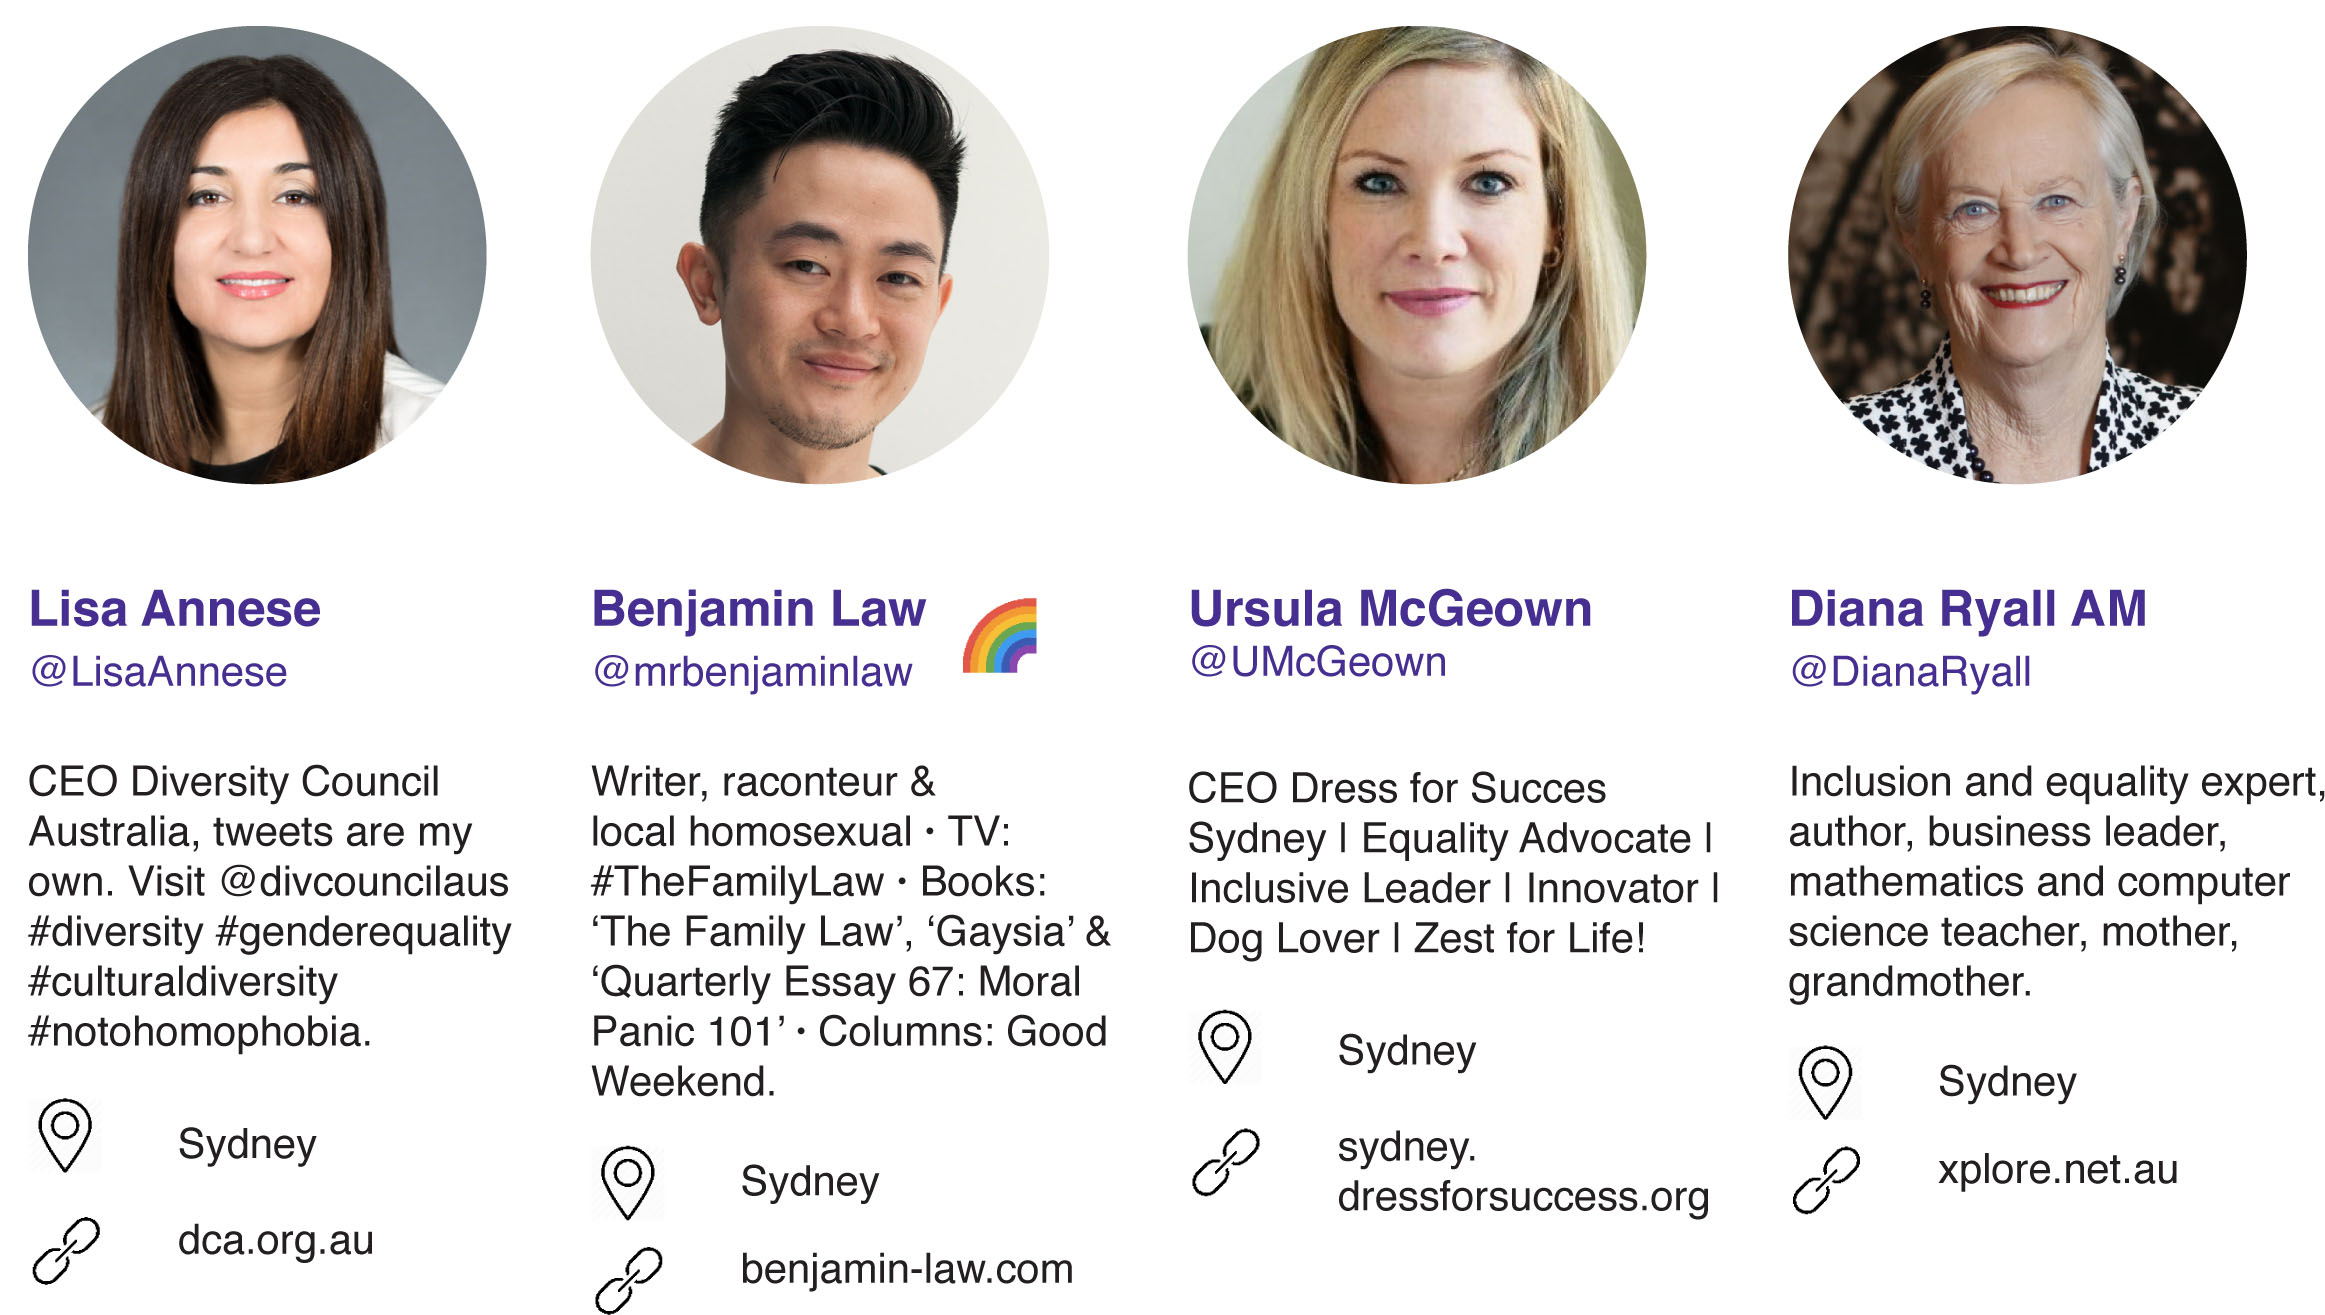 Lisa Annese, Benjamin Law, Ursula McGeown, and Diana Ryall AM.